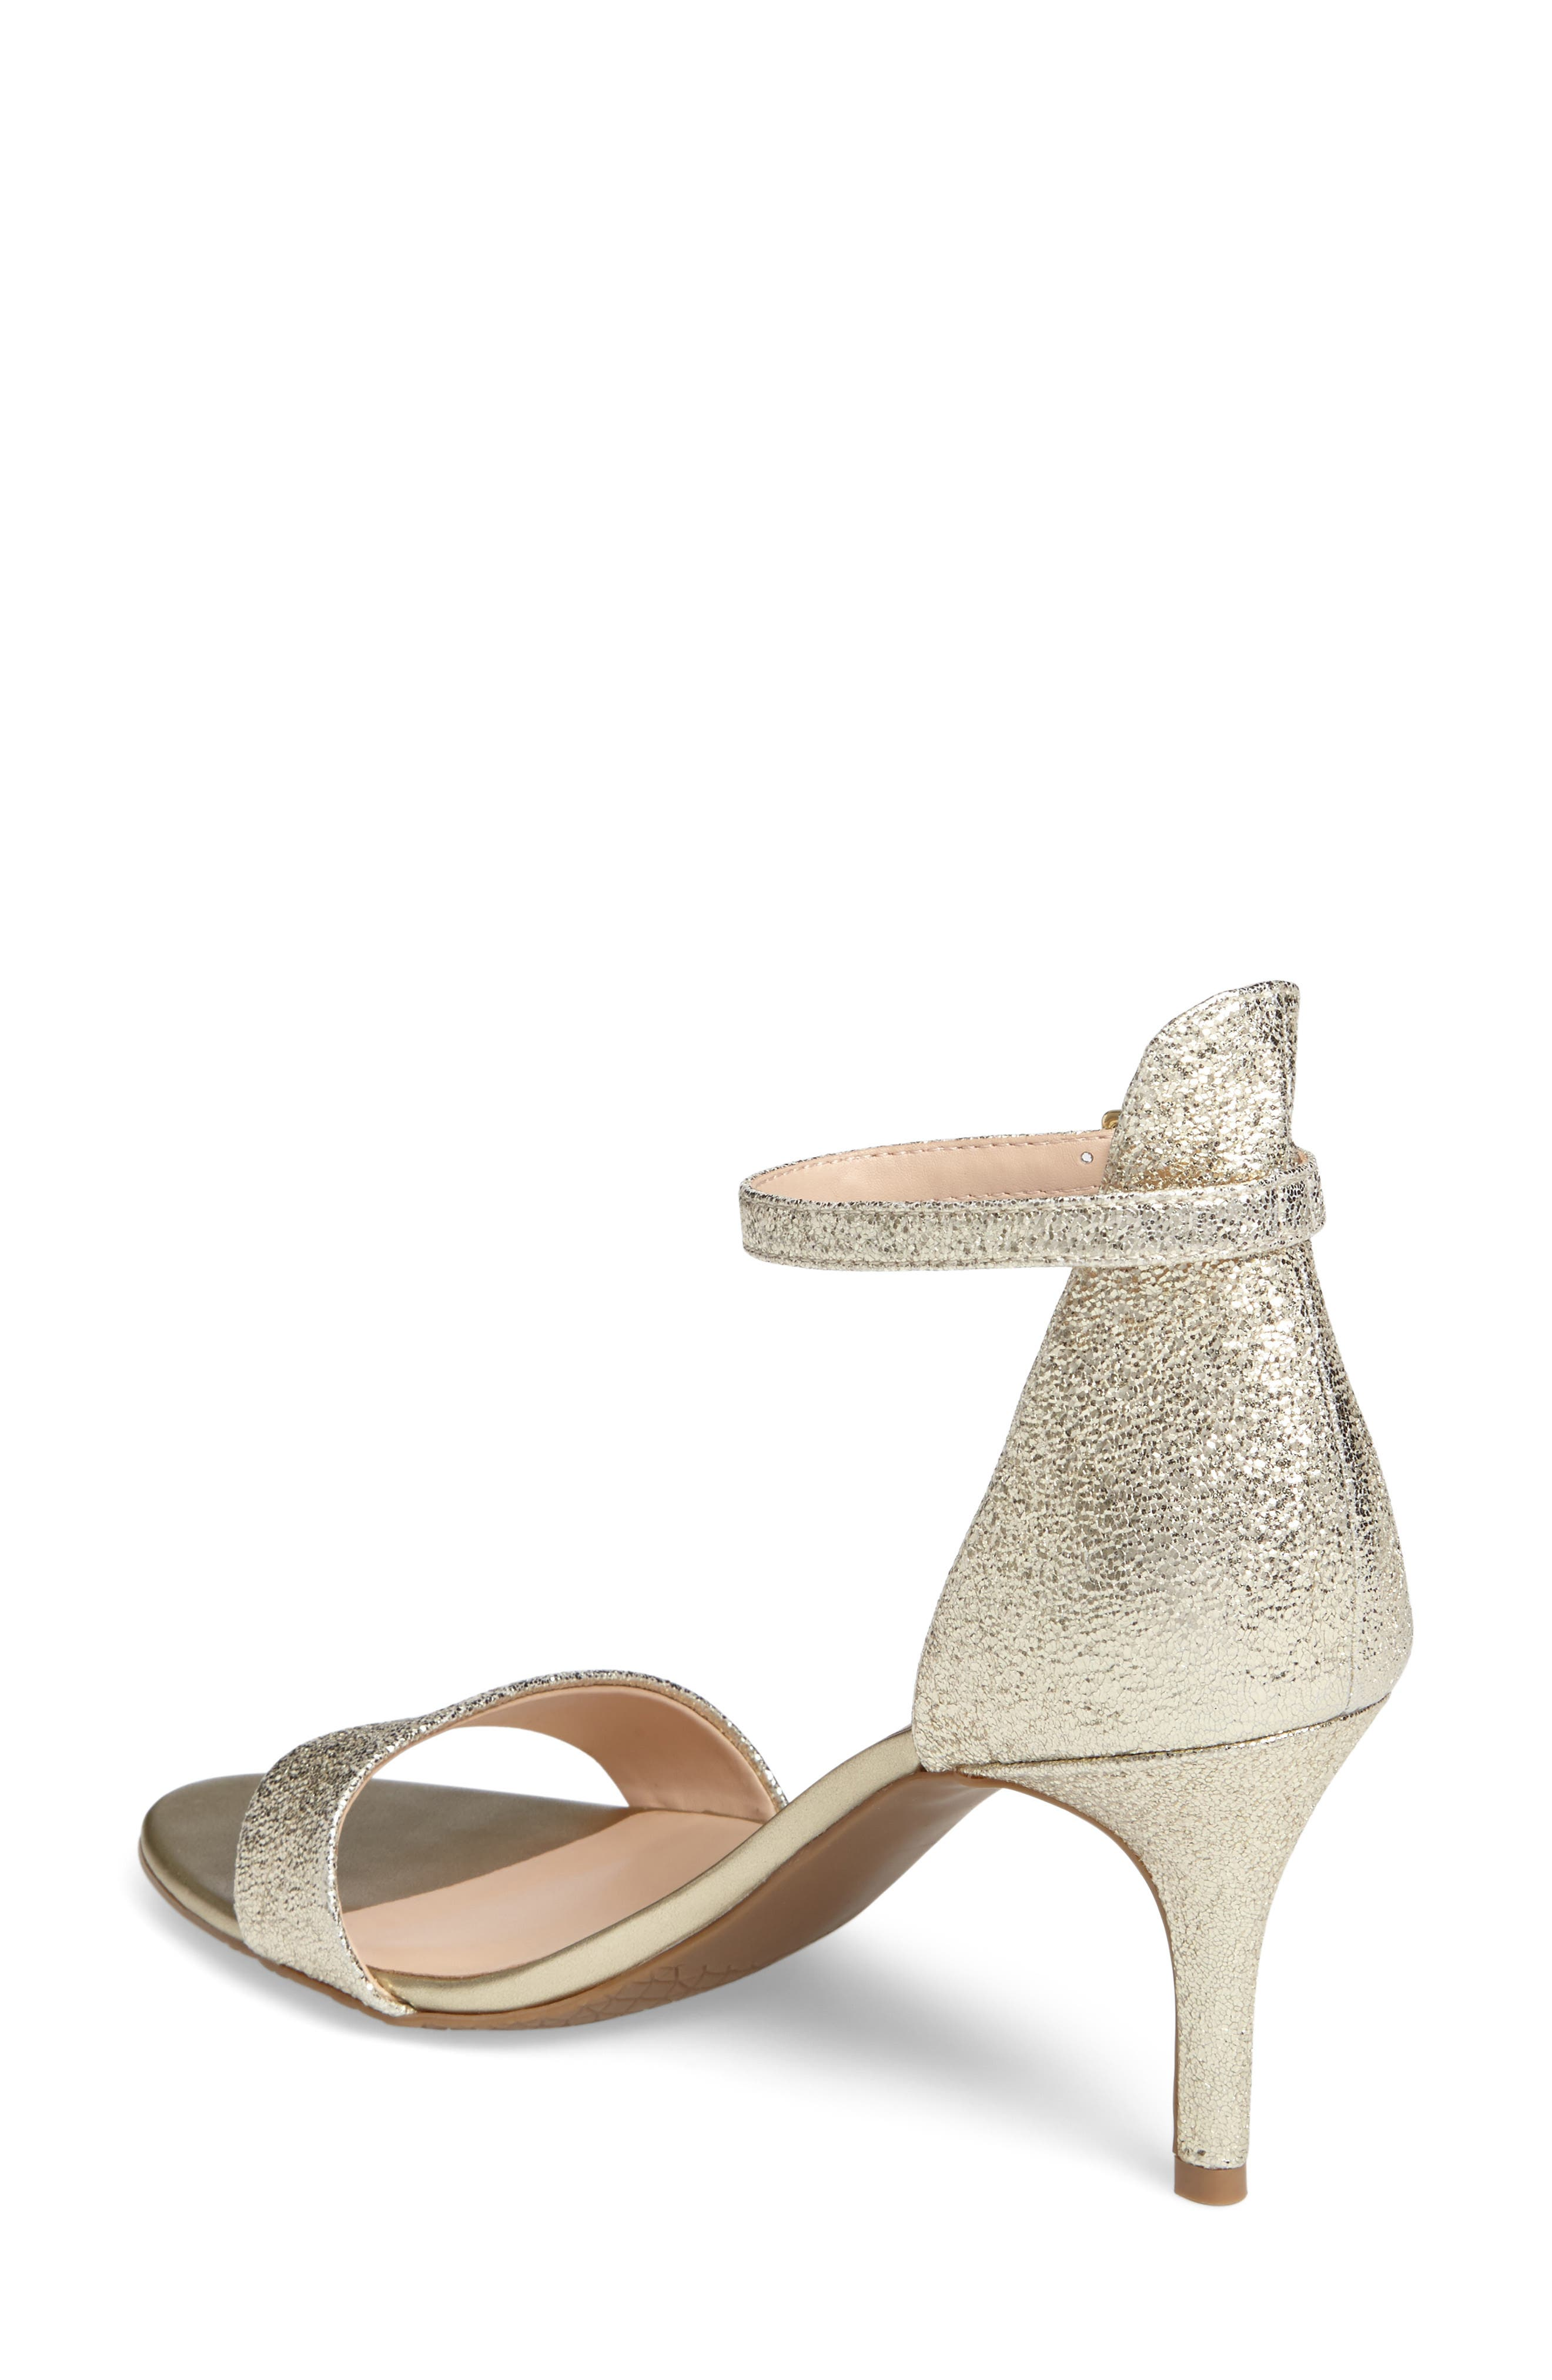 'Luminate' Open Toe Dress Sandal,                             Alternate thumbnail 94, color,